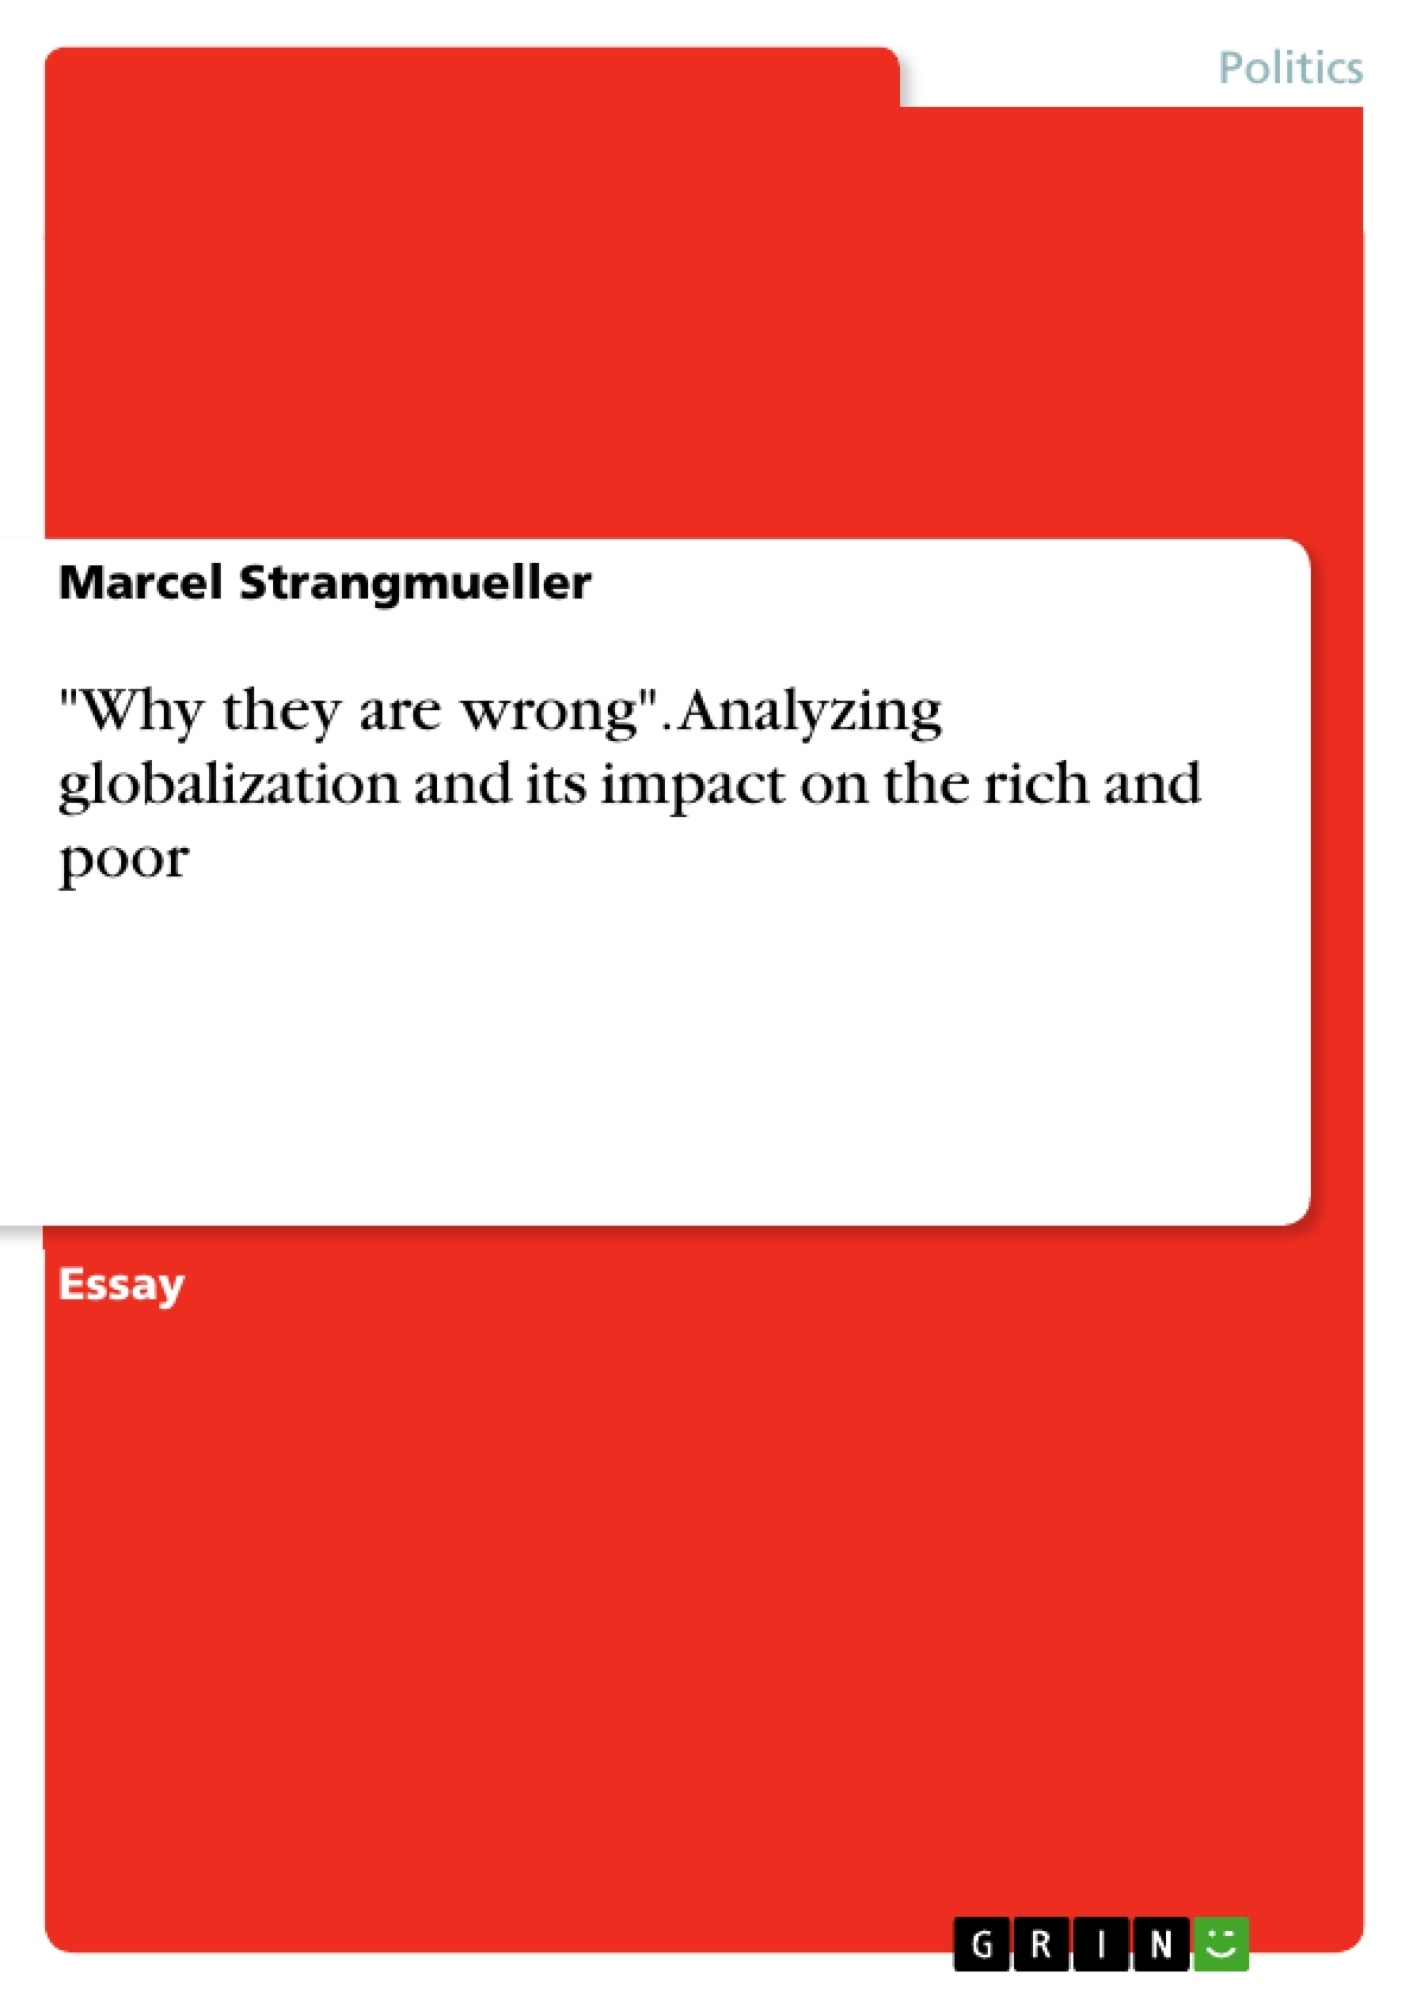 """Title: """"Why they are wrong"""". Analyzing globalization and its impact on the rich and poor"""